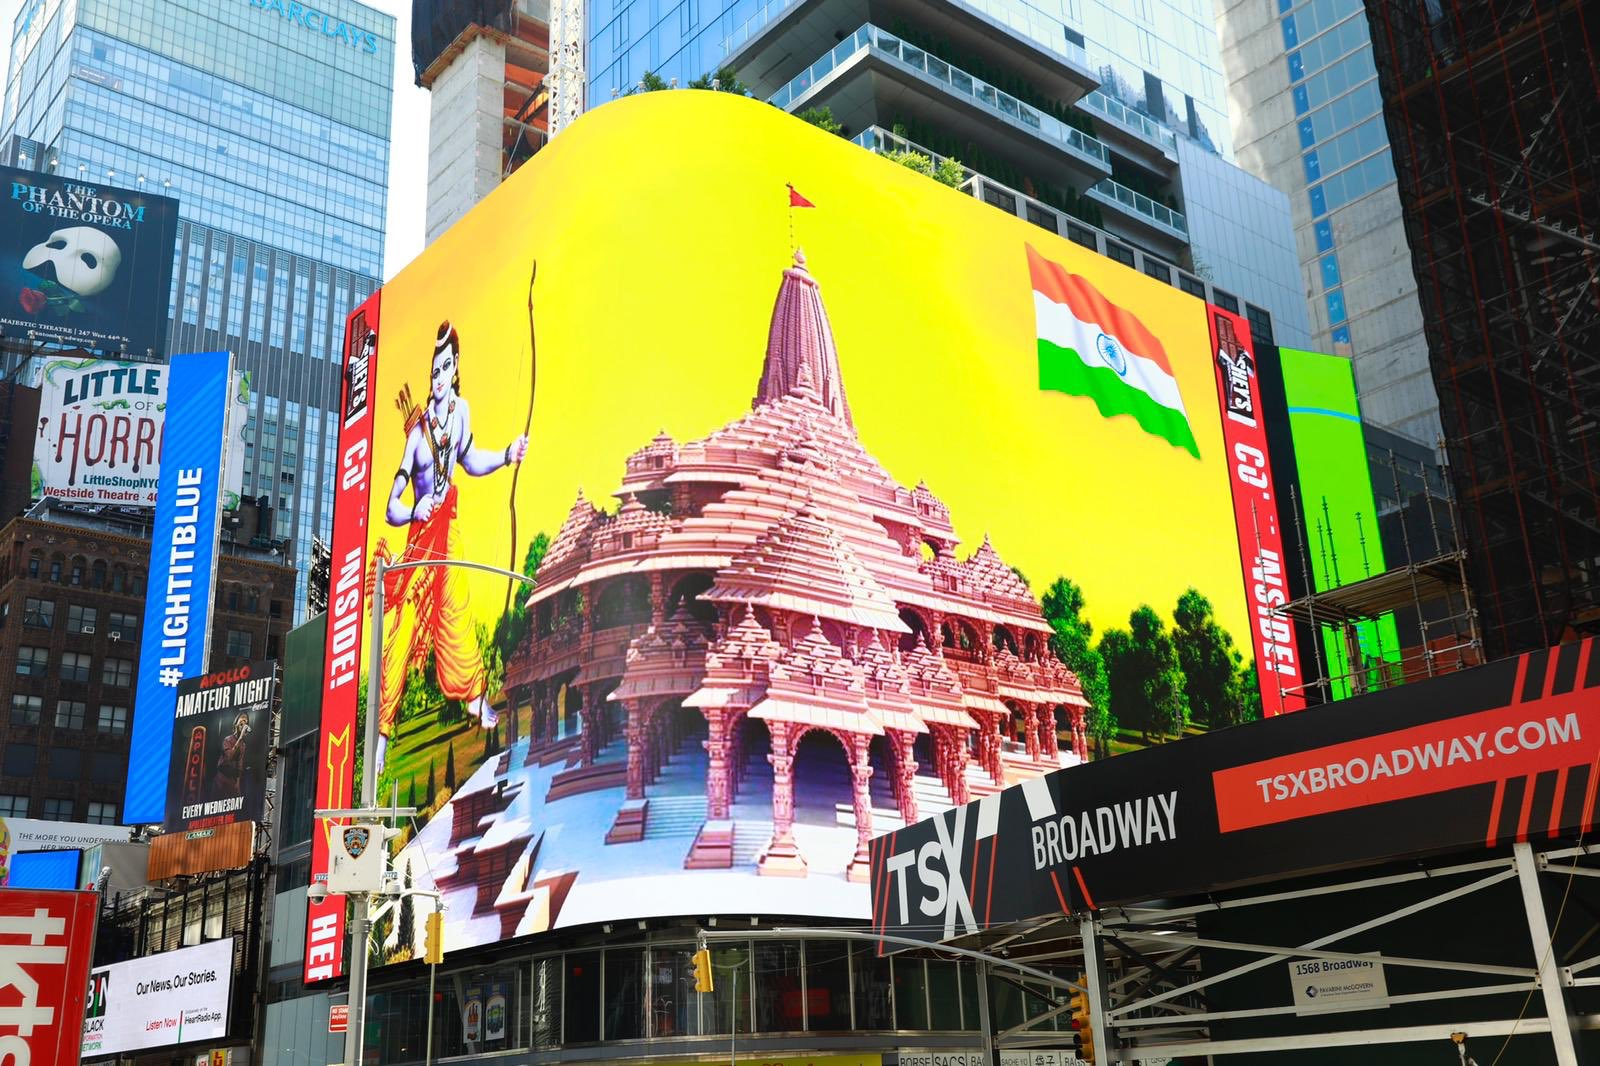 A mega event was scheduled at New York's iconic Times Square wherein images of Lord Ram and the proposed temple would be on display on gigantic screens.